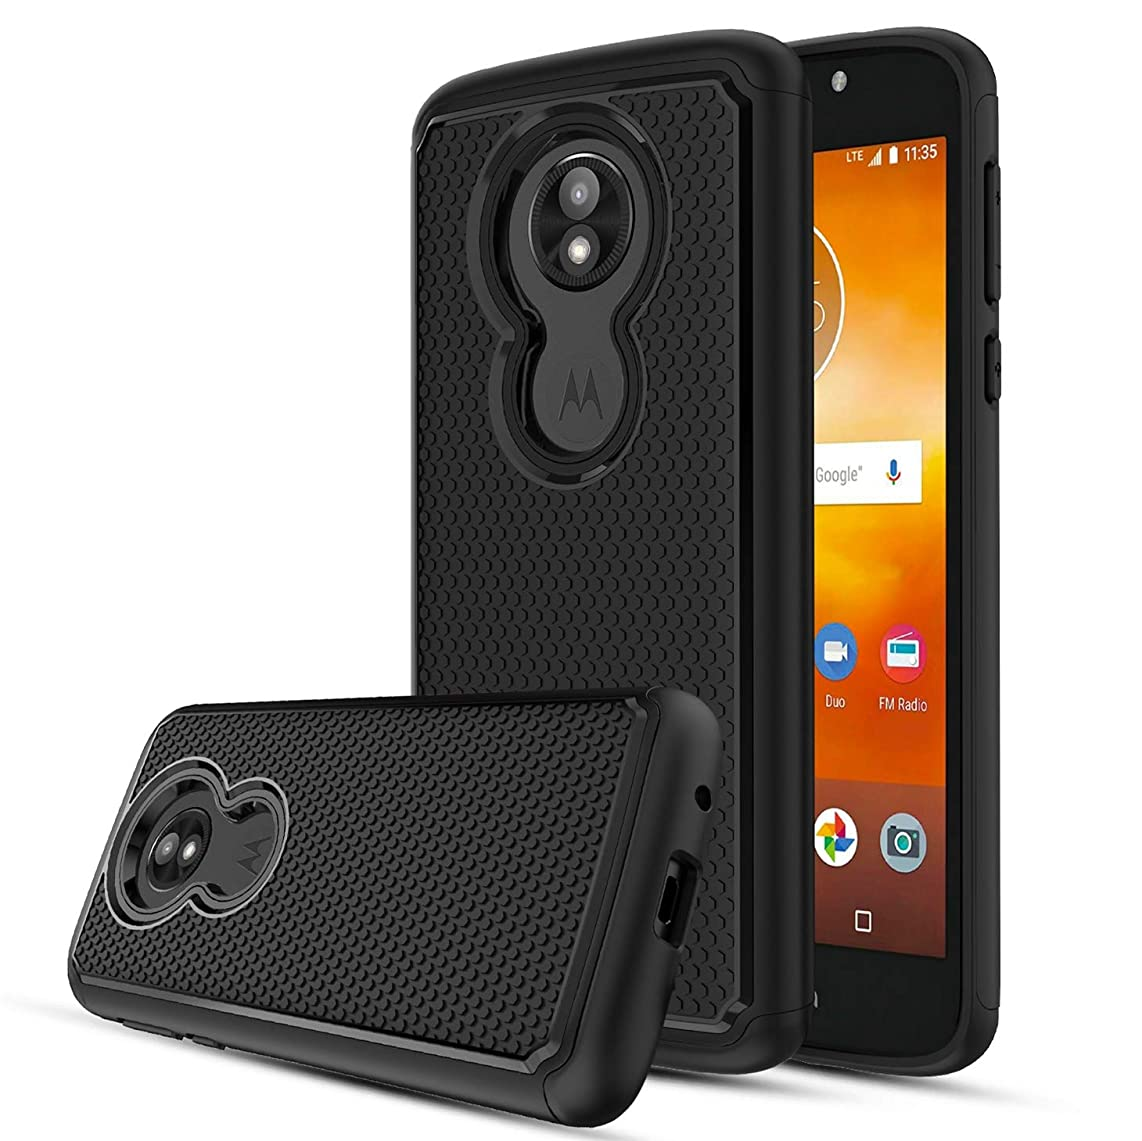 Likeny Moto E5 Play Case,Motorola E5 Cruise Case with Screen Protector,Rubber Silicone Plastic Scratch Proof Cover for Men/Women-Black